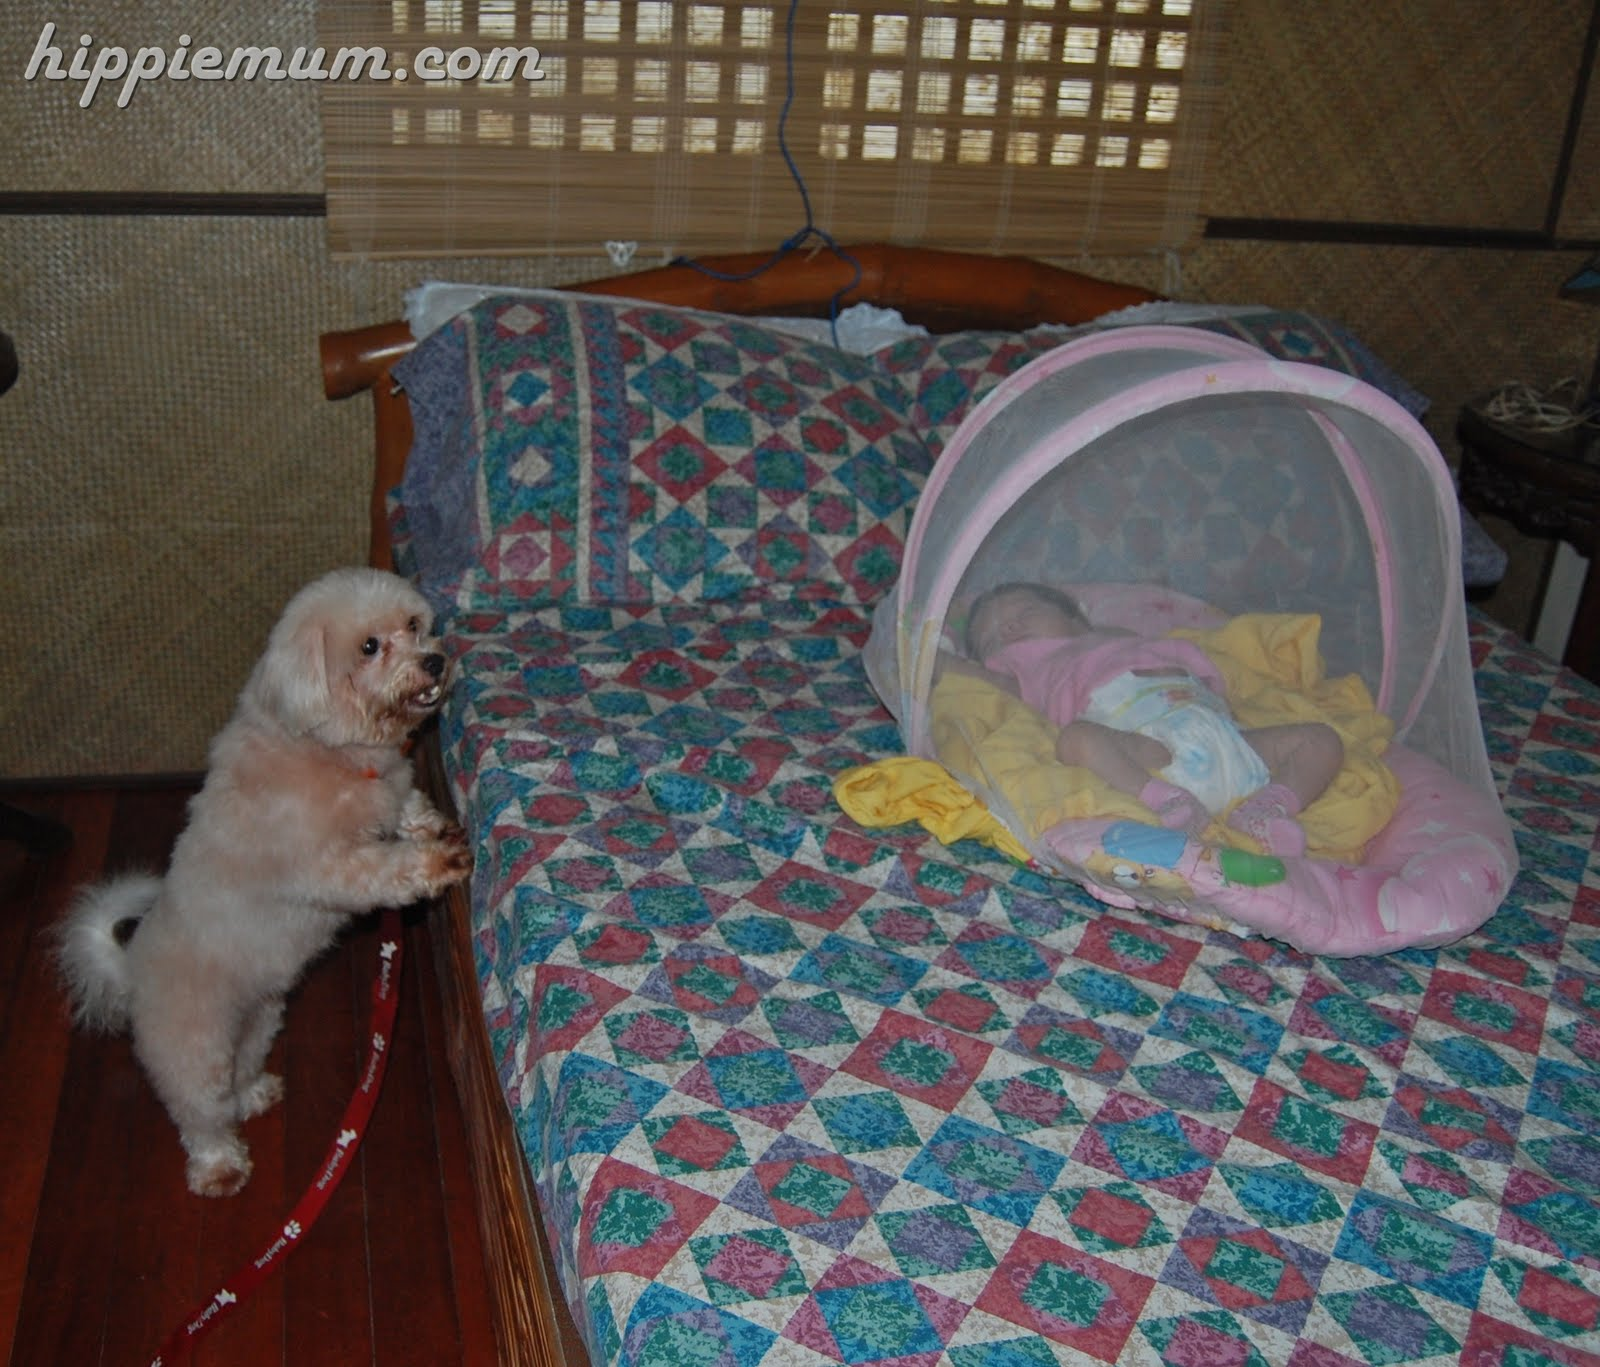 Crib for babies philippines - Co Sleeping Vs Crib Hippie Mum